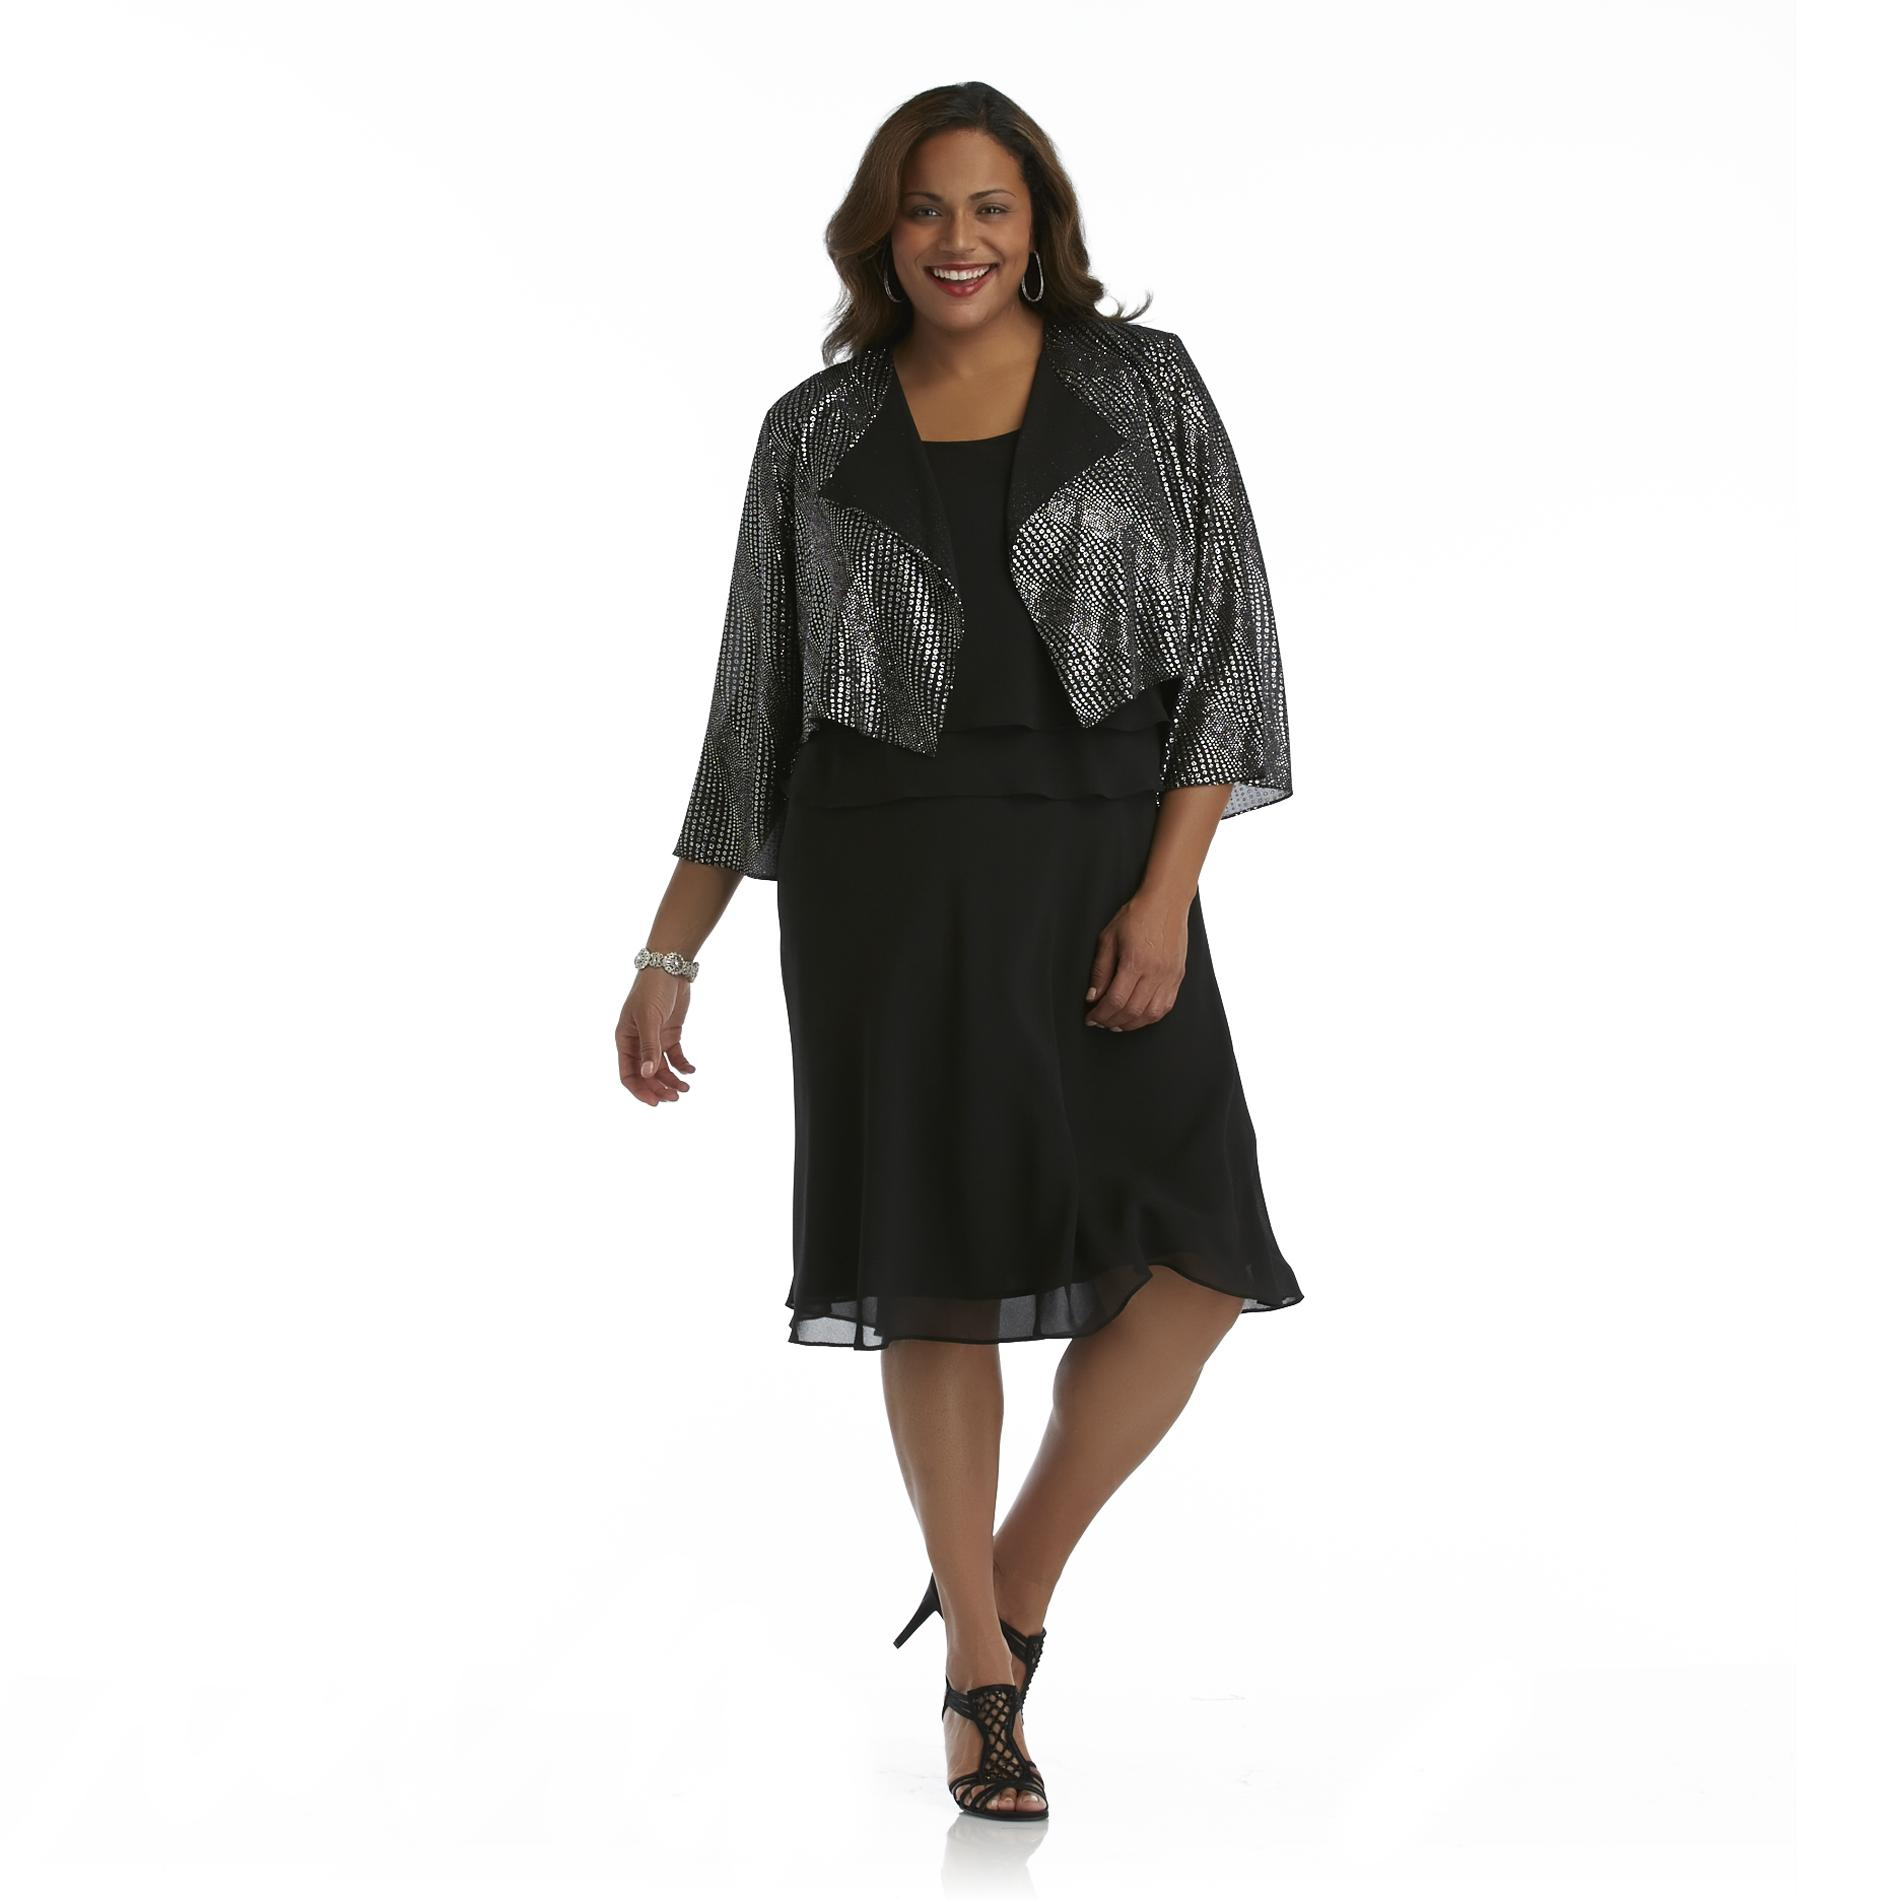 Darian Group Women's Plus Layered Dress at Sears.com